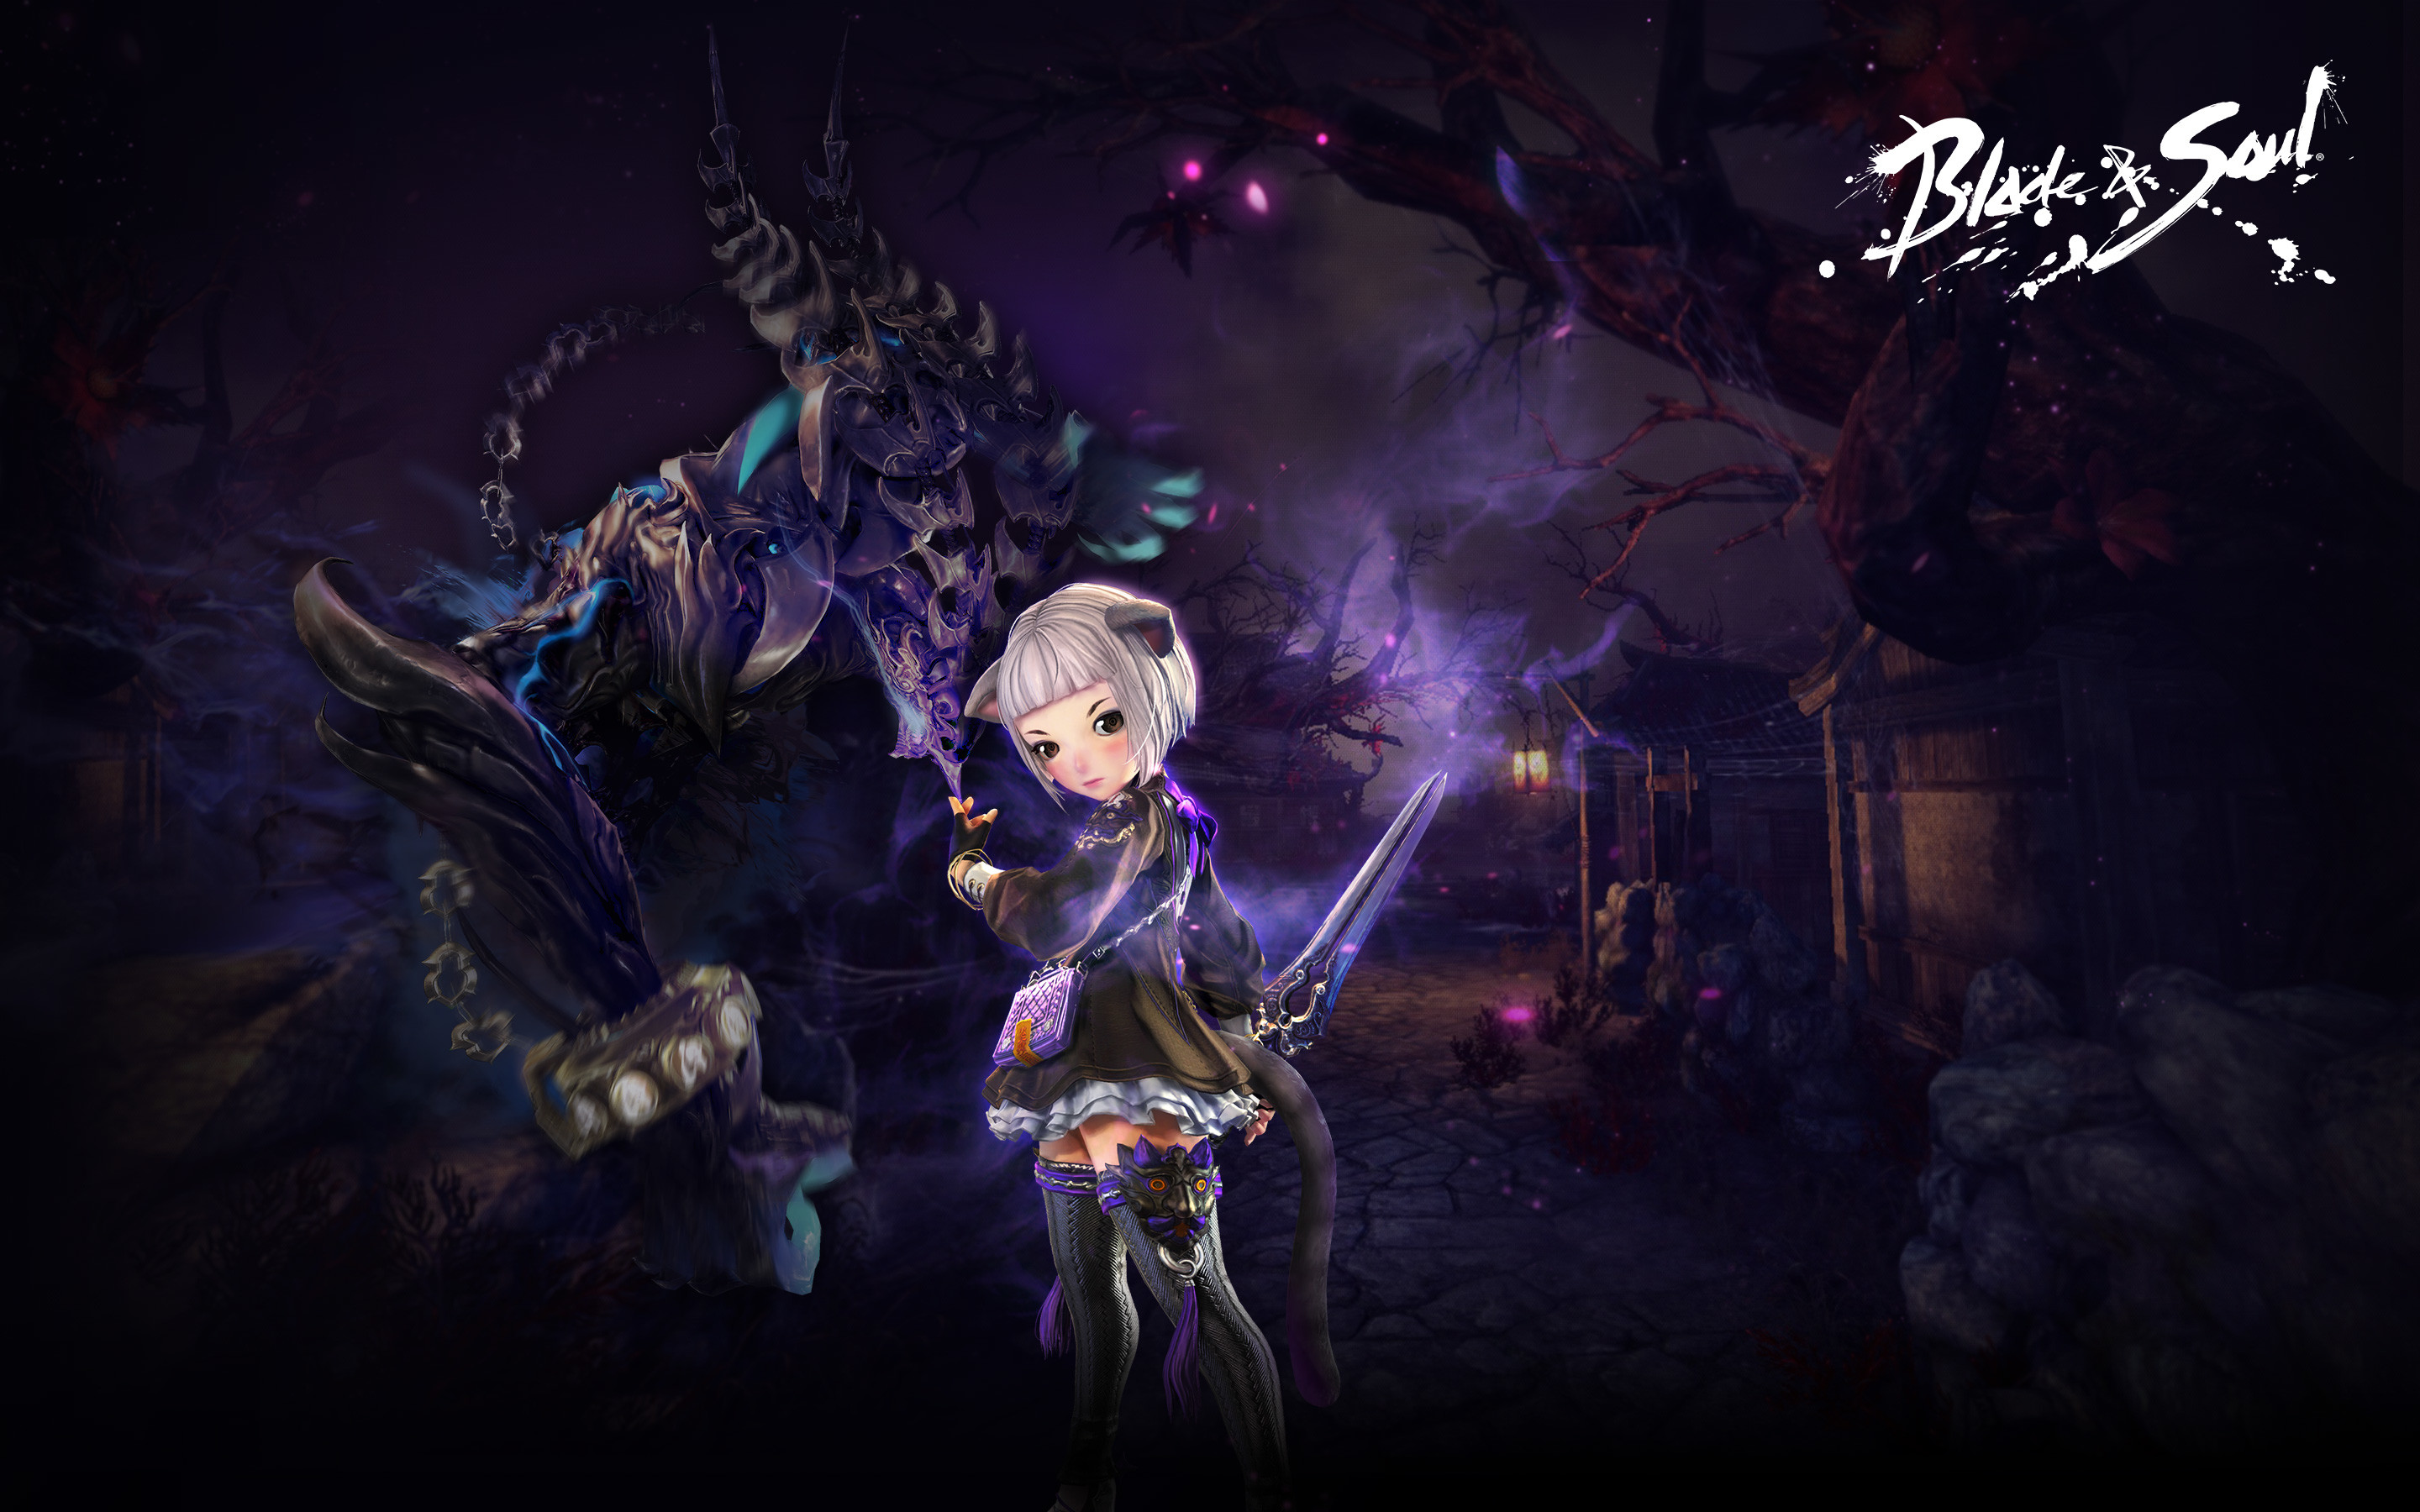 Blade And Soul Wallpaper: Blade And Soul Wallpapers HD (78+ Images